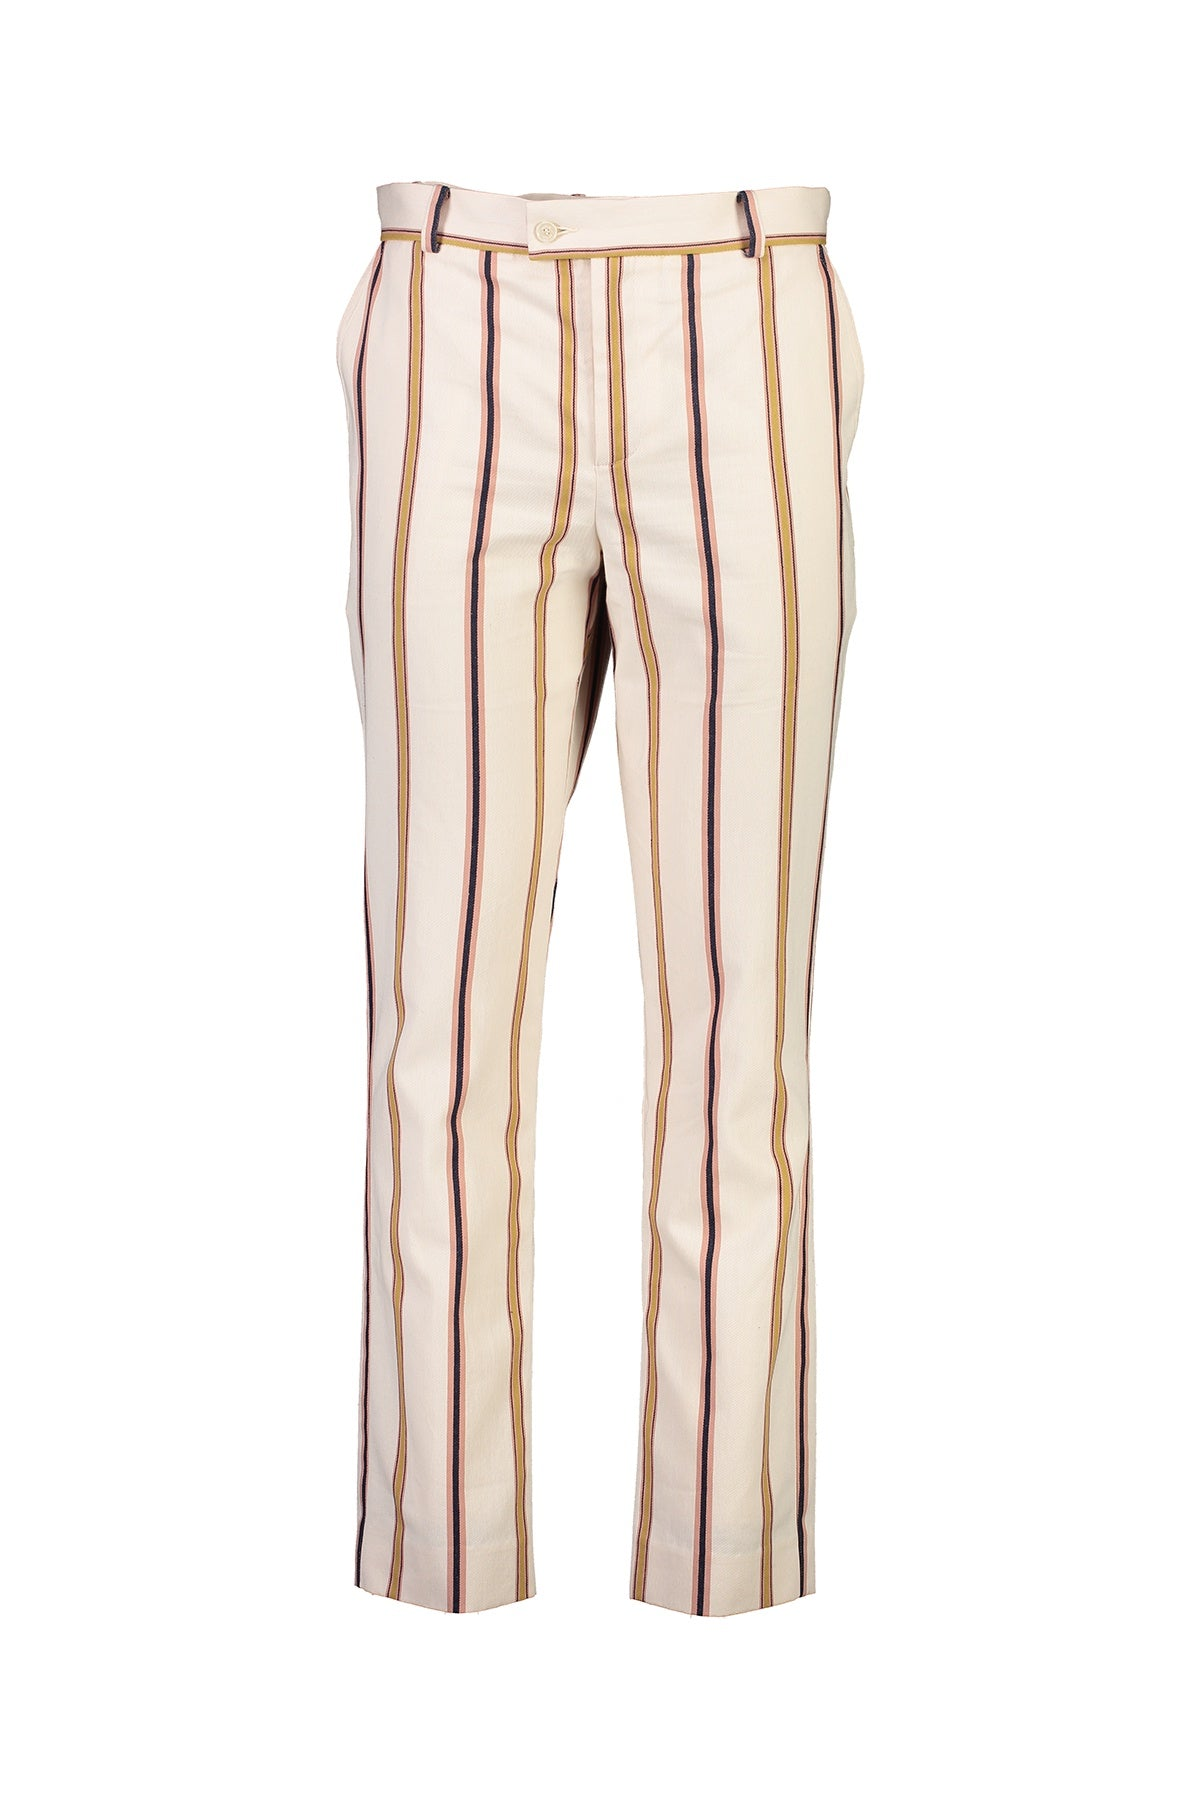 WORLDman 4563 Correction Trouser Stripe